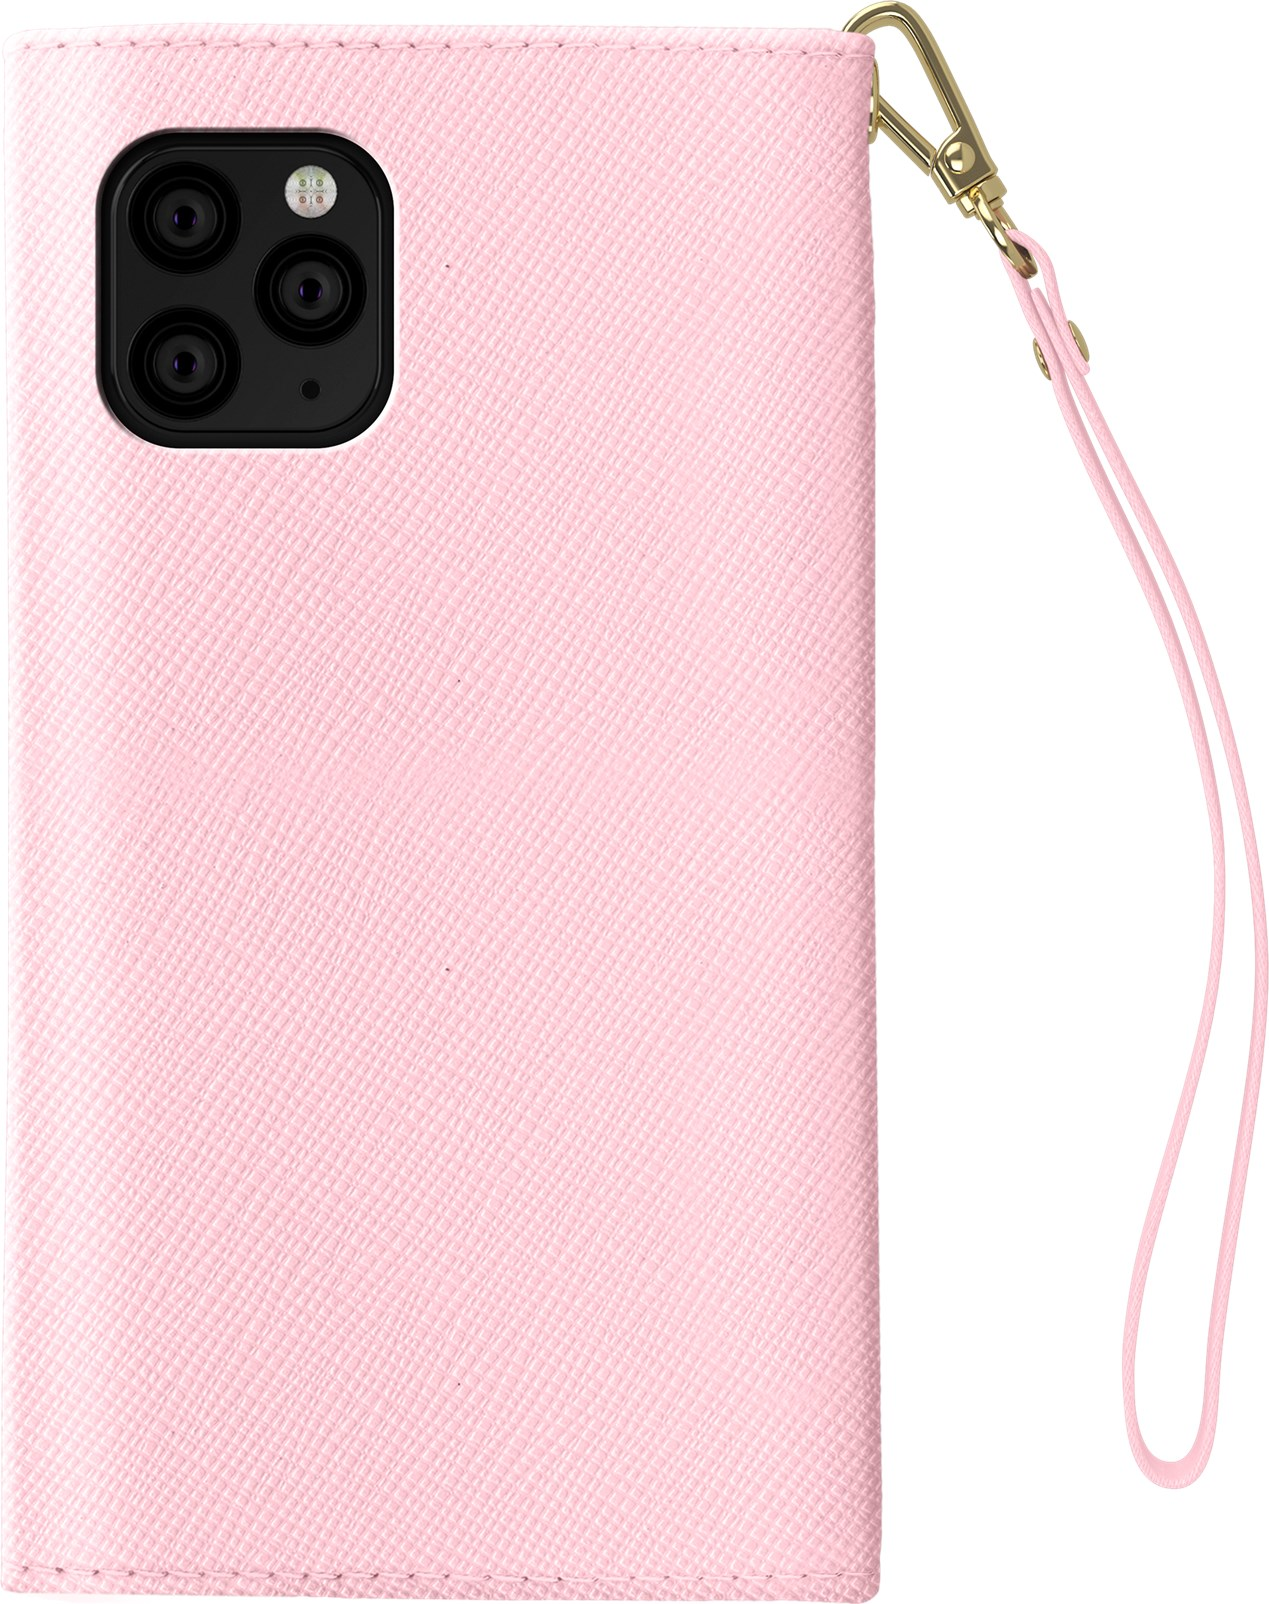 iDeal of Sweden Ideal Mayfair Clutch Iphone 11 Pro Pink